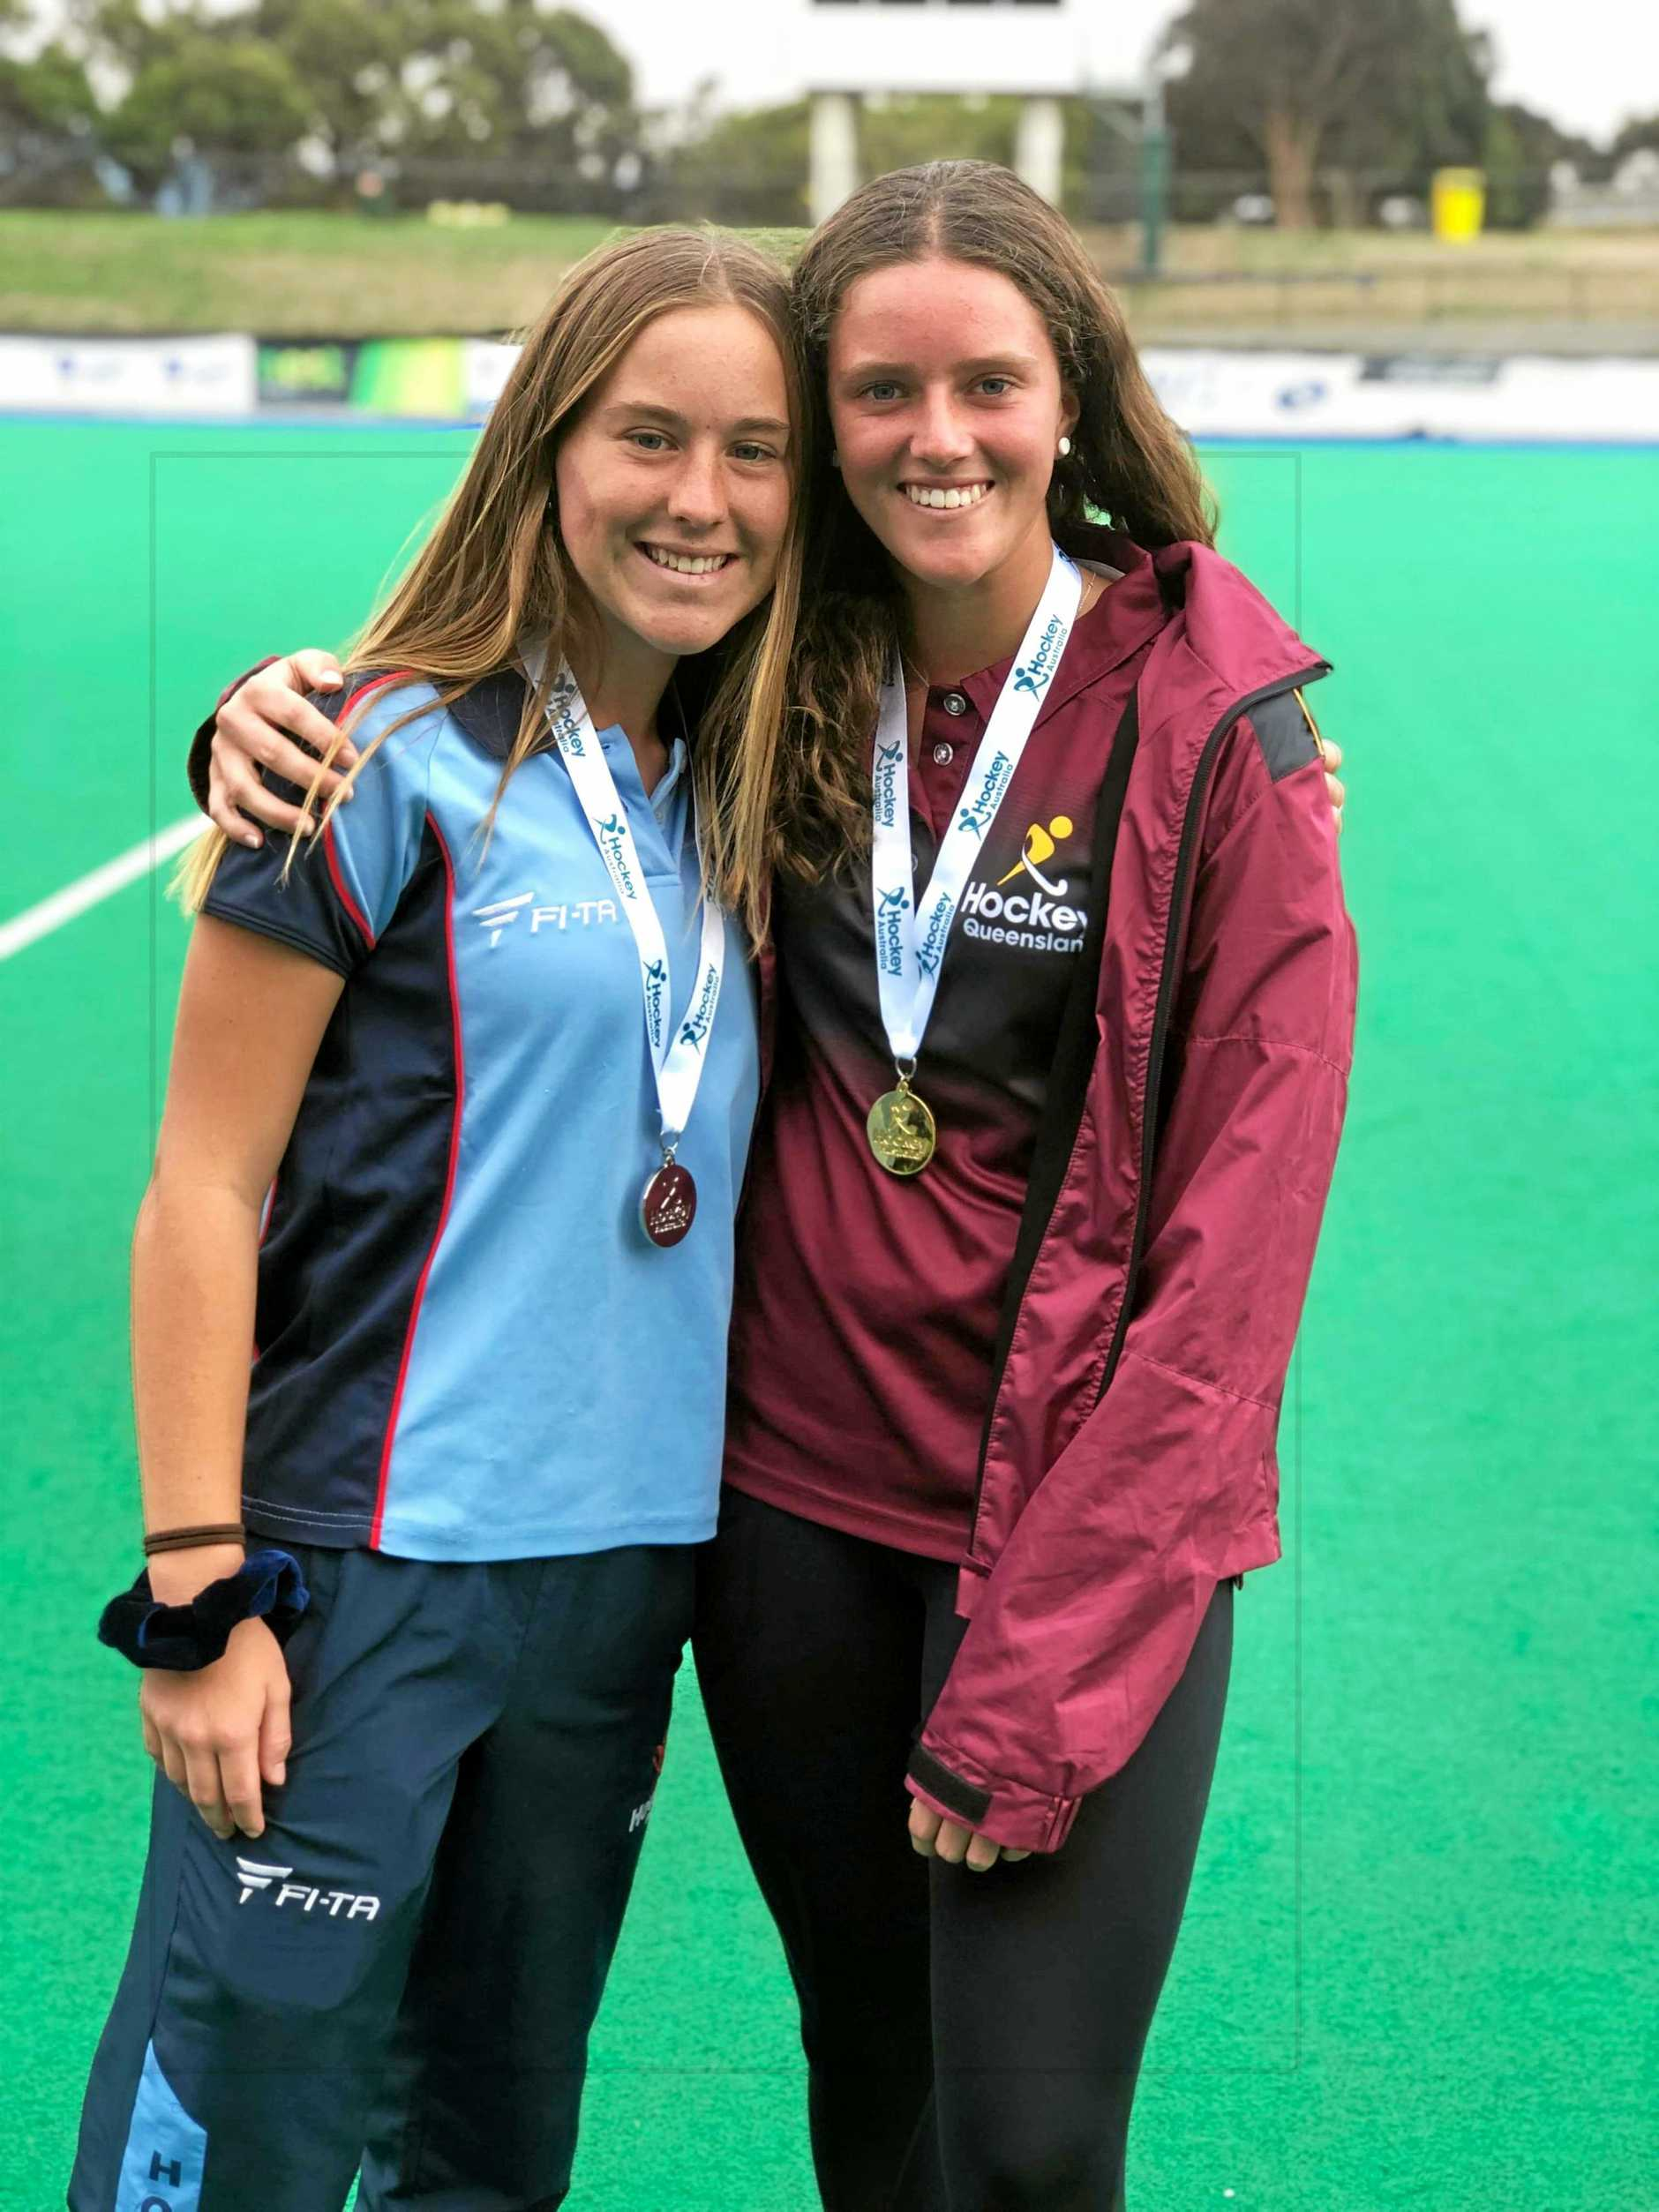 STERLING EFFORT: Ashleigh Ensbey (left) claimed silver against Kyra Livermore's Queensland in a hard-fought final of the 2019 Under-18 Women's Outdoor Championships in Hobart.